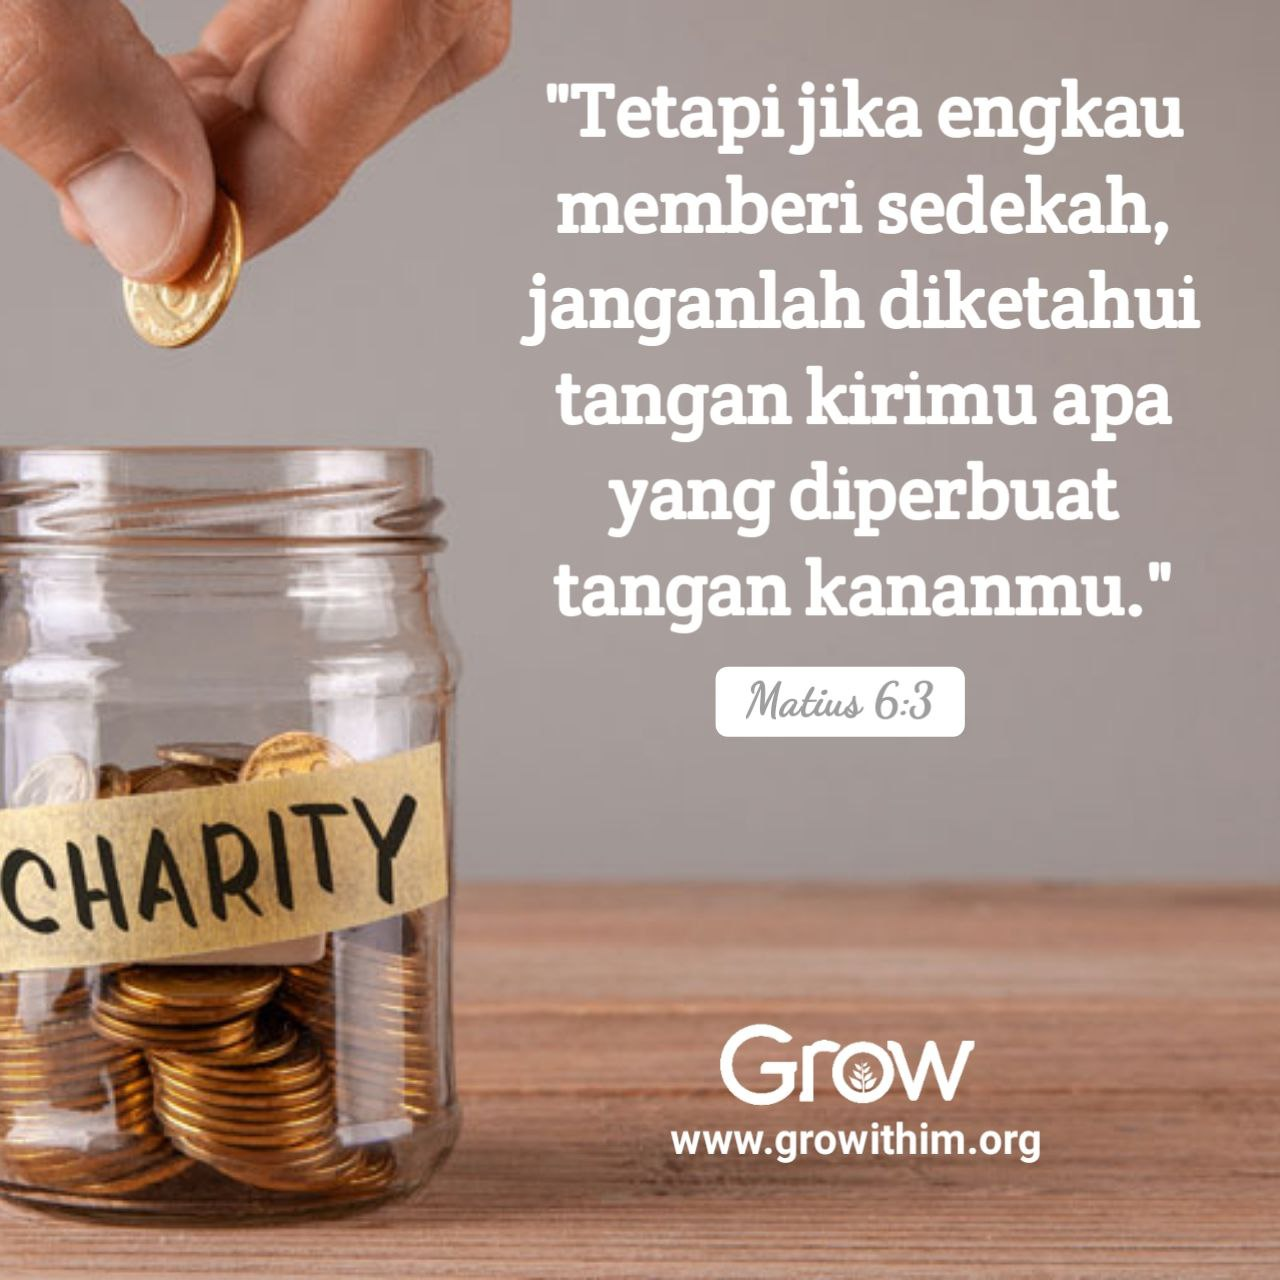 www.growithim.org